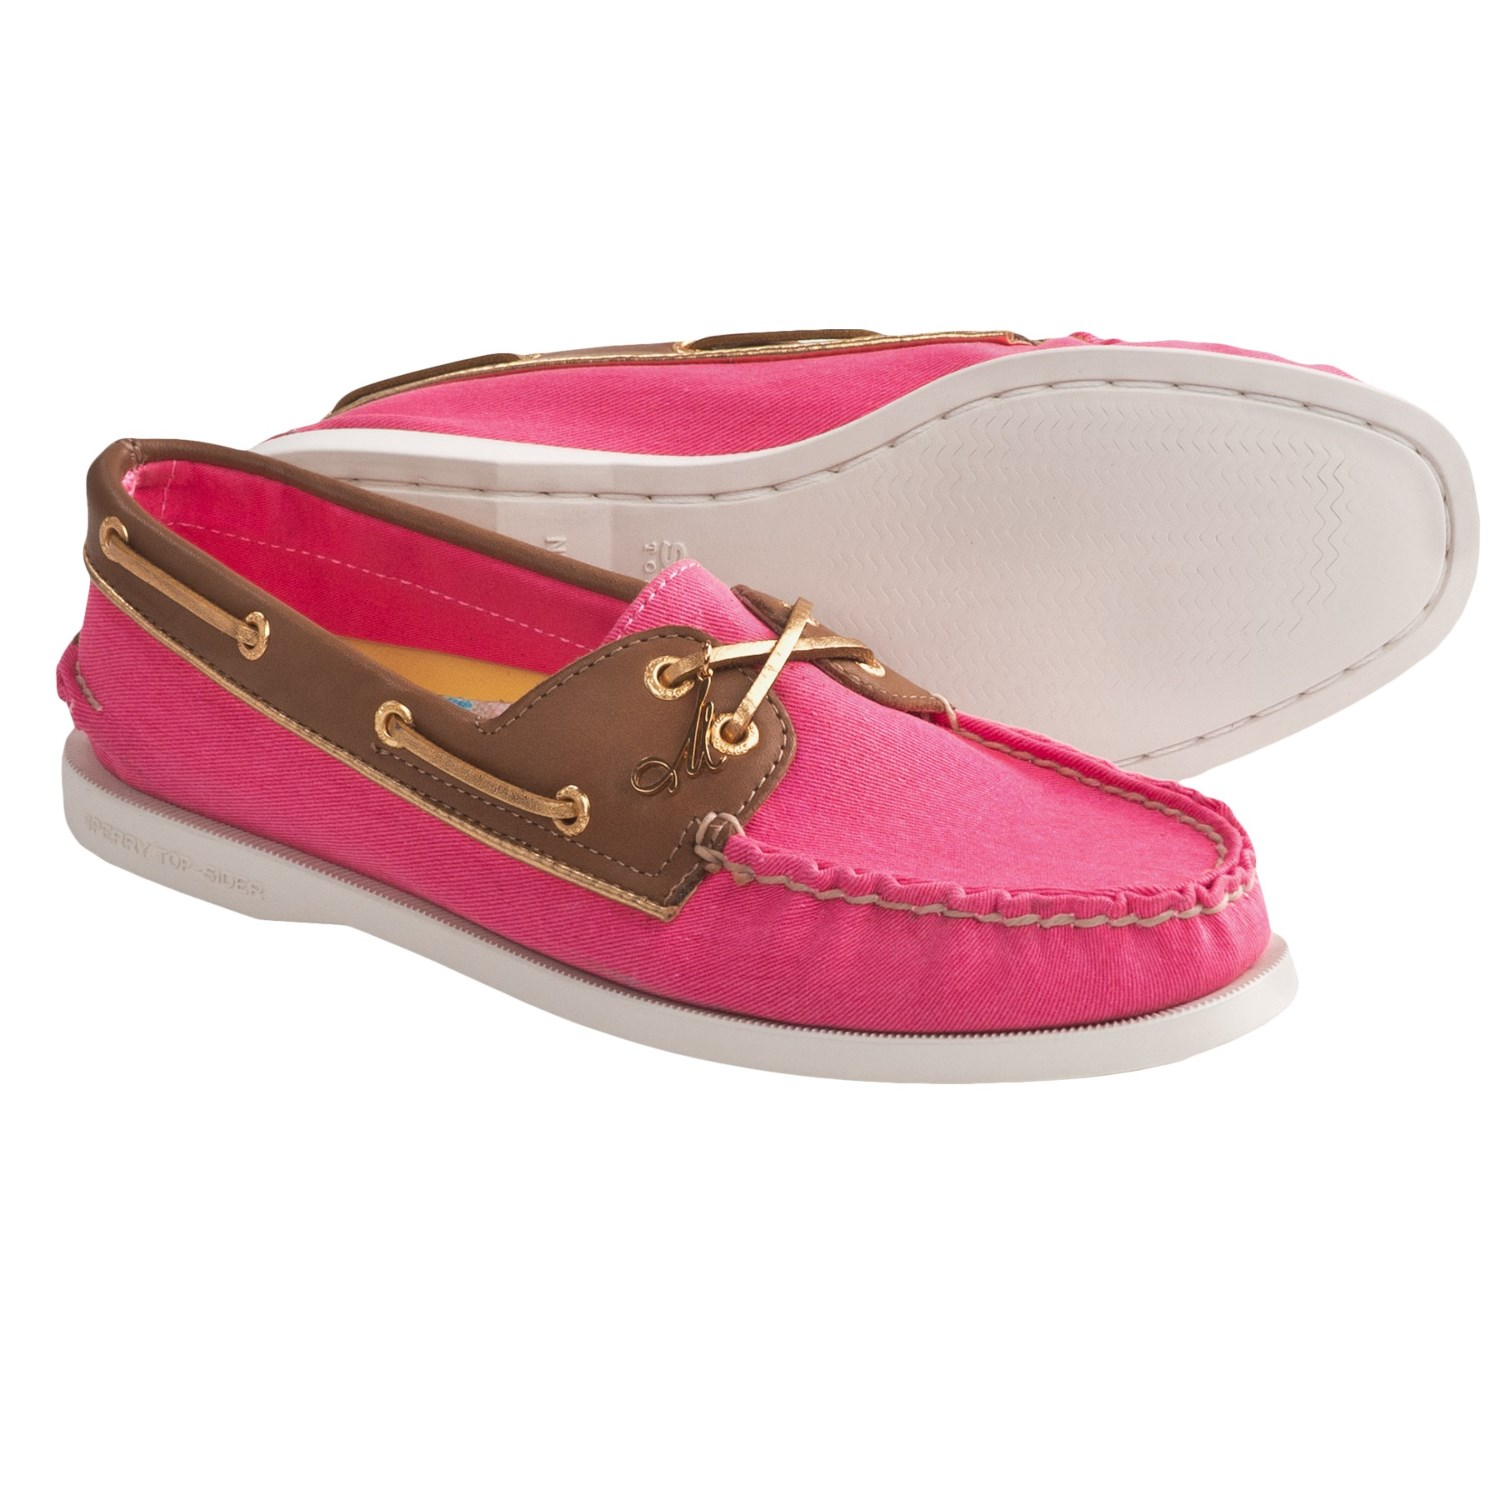 Sperry Top-Sider Authentic Original Boat Shoes (For Women) in Bright